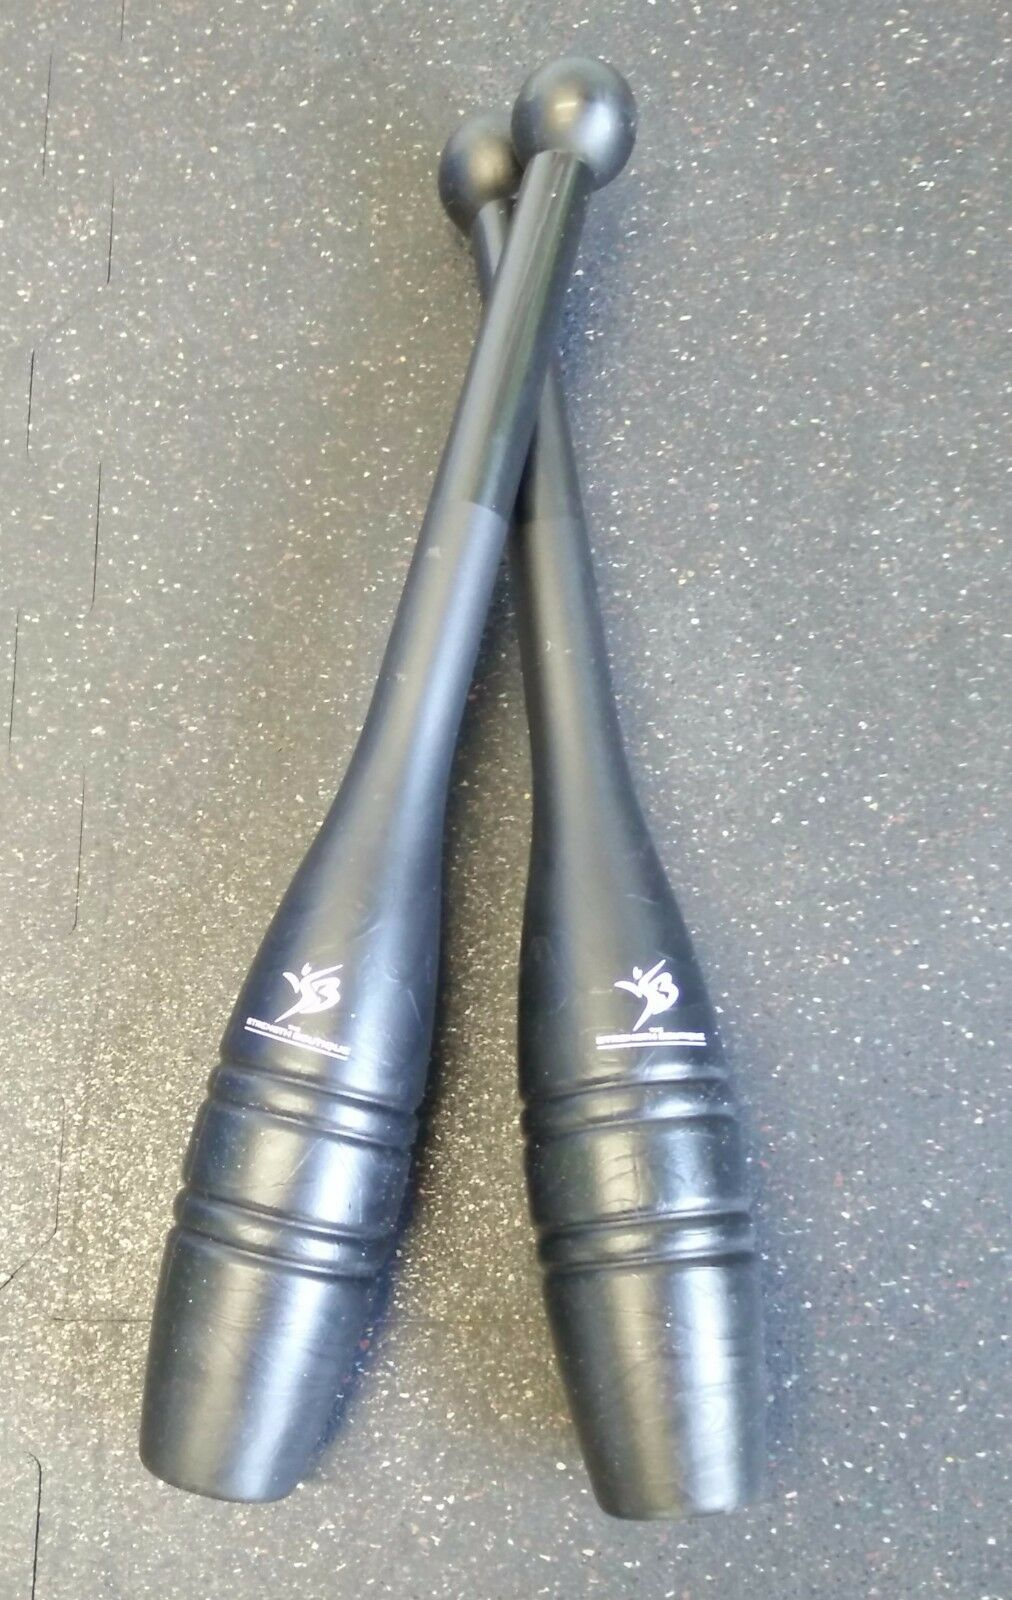 1 Pound (2 lb Pair) Indian Clubs for Shoulder Mobility & Rehab indian club